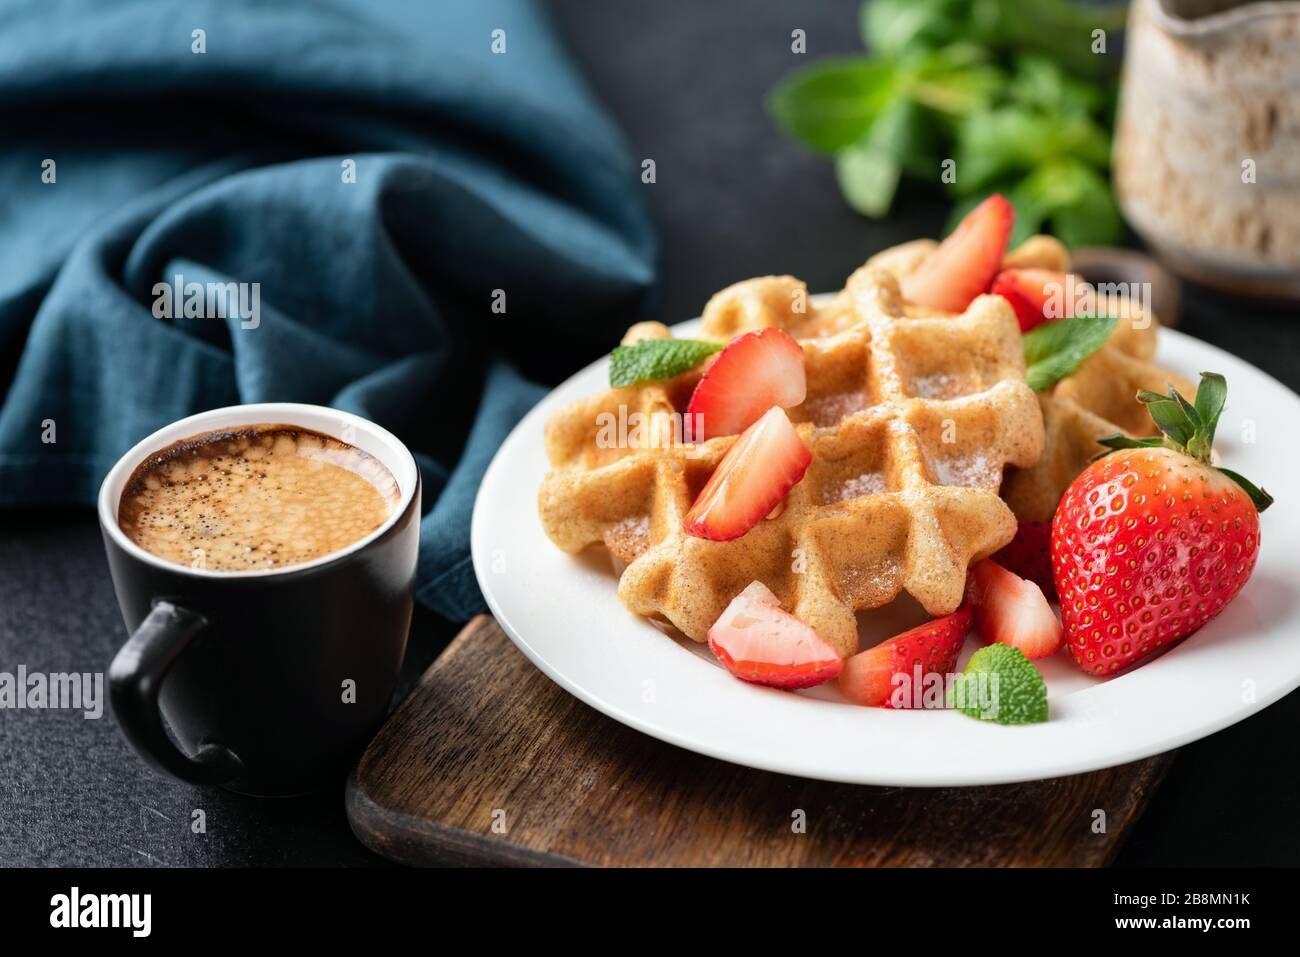 Tasty Belgian Waffles With Strawberries And Cup Of Coffee Tasty Sweet Breakfast Food Stock Photo Alamy